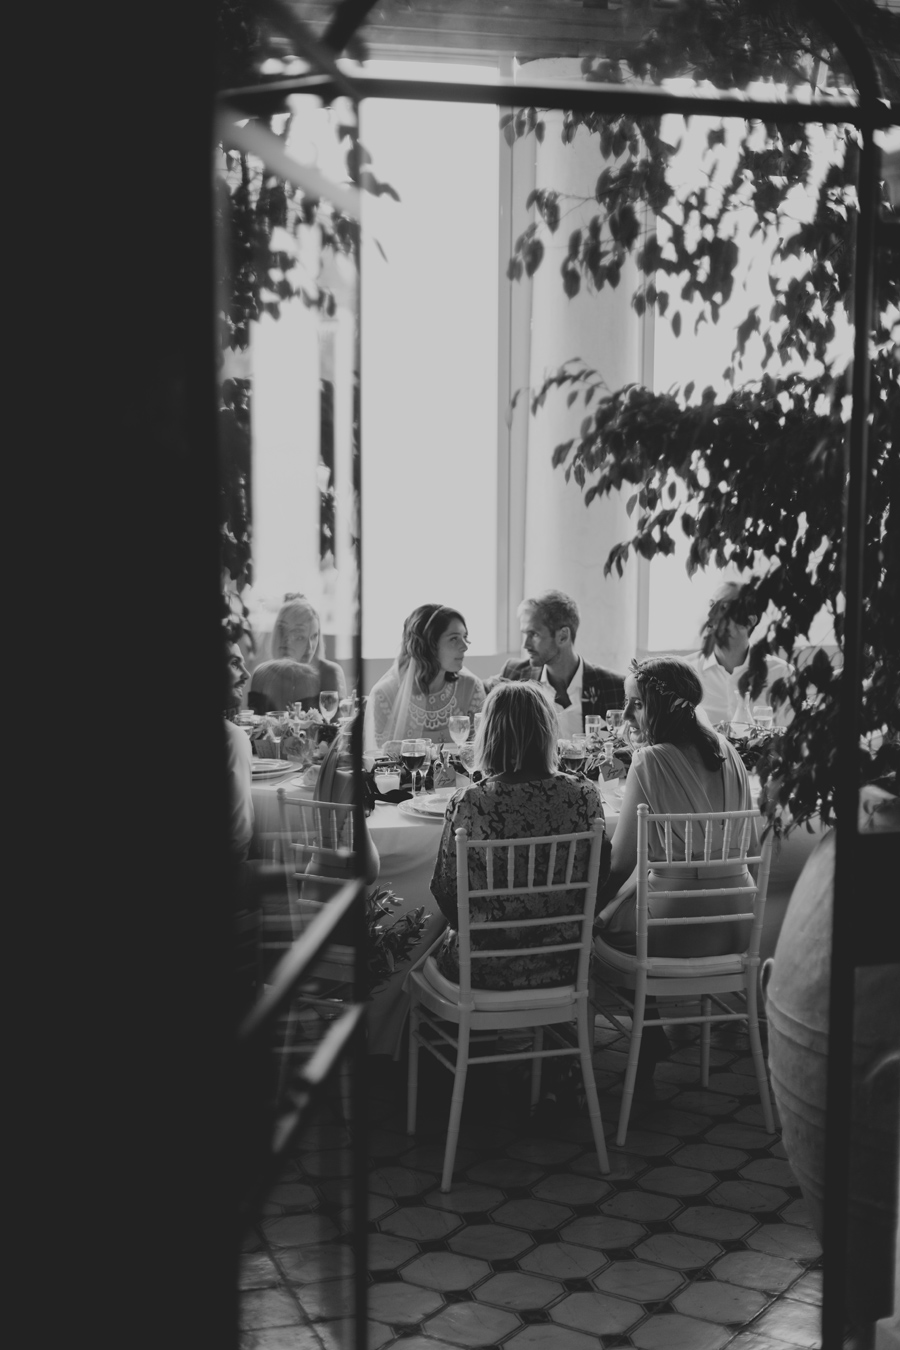 positano-wedding-211